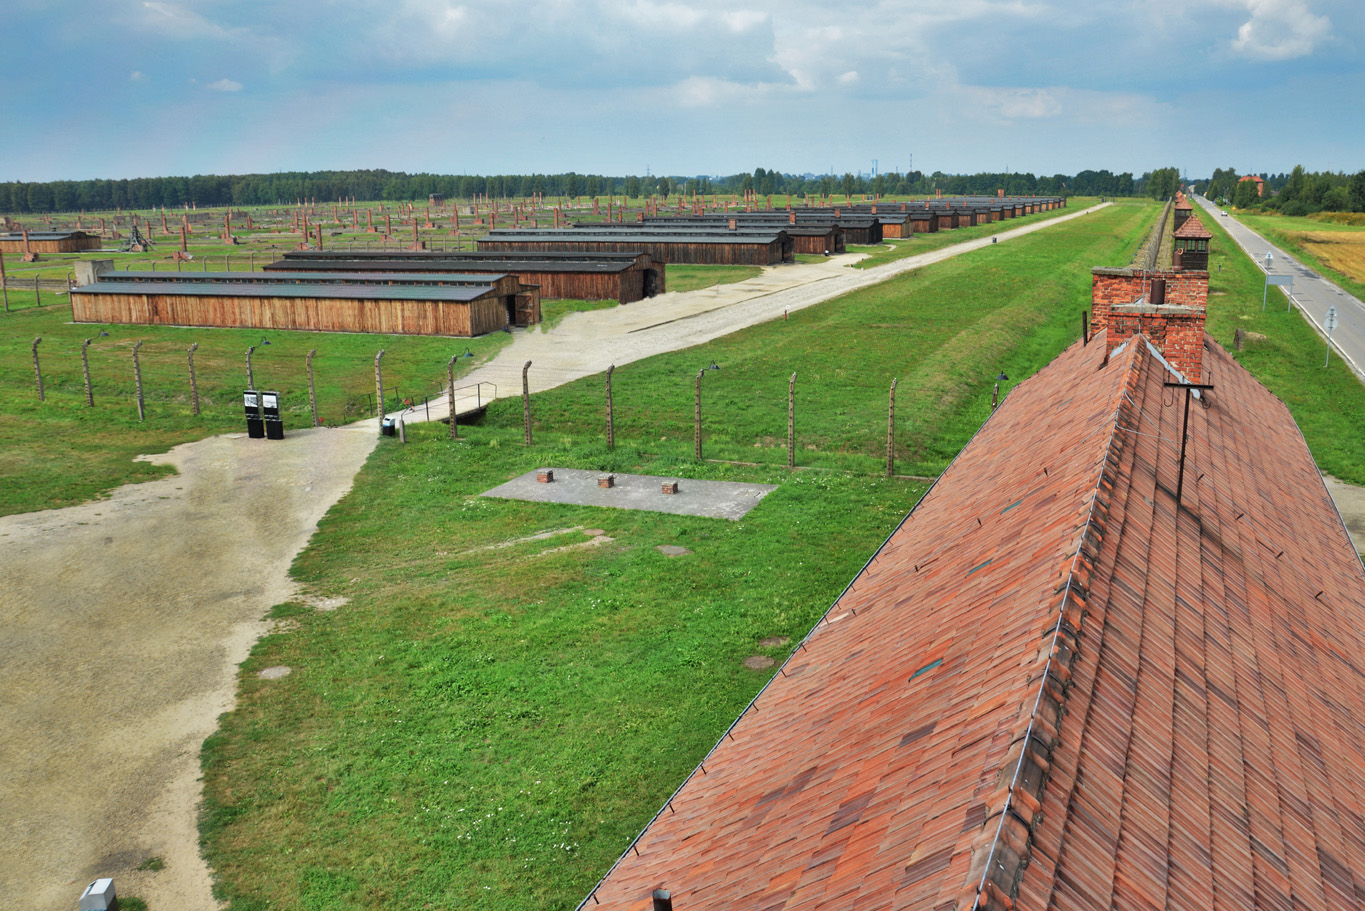 The view over the camp in Birkenau